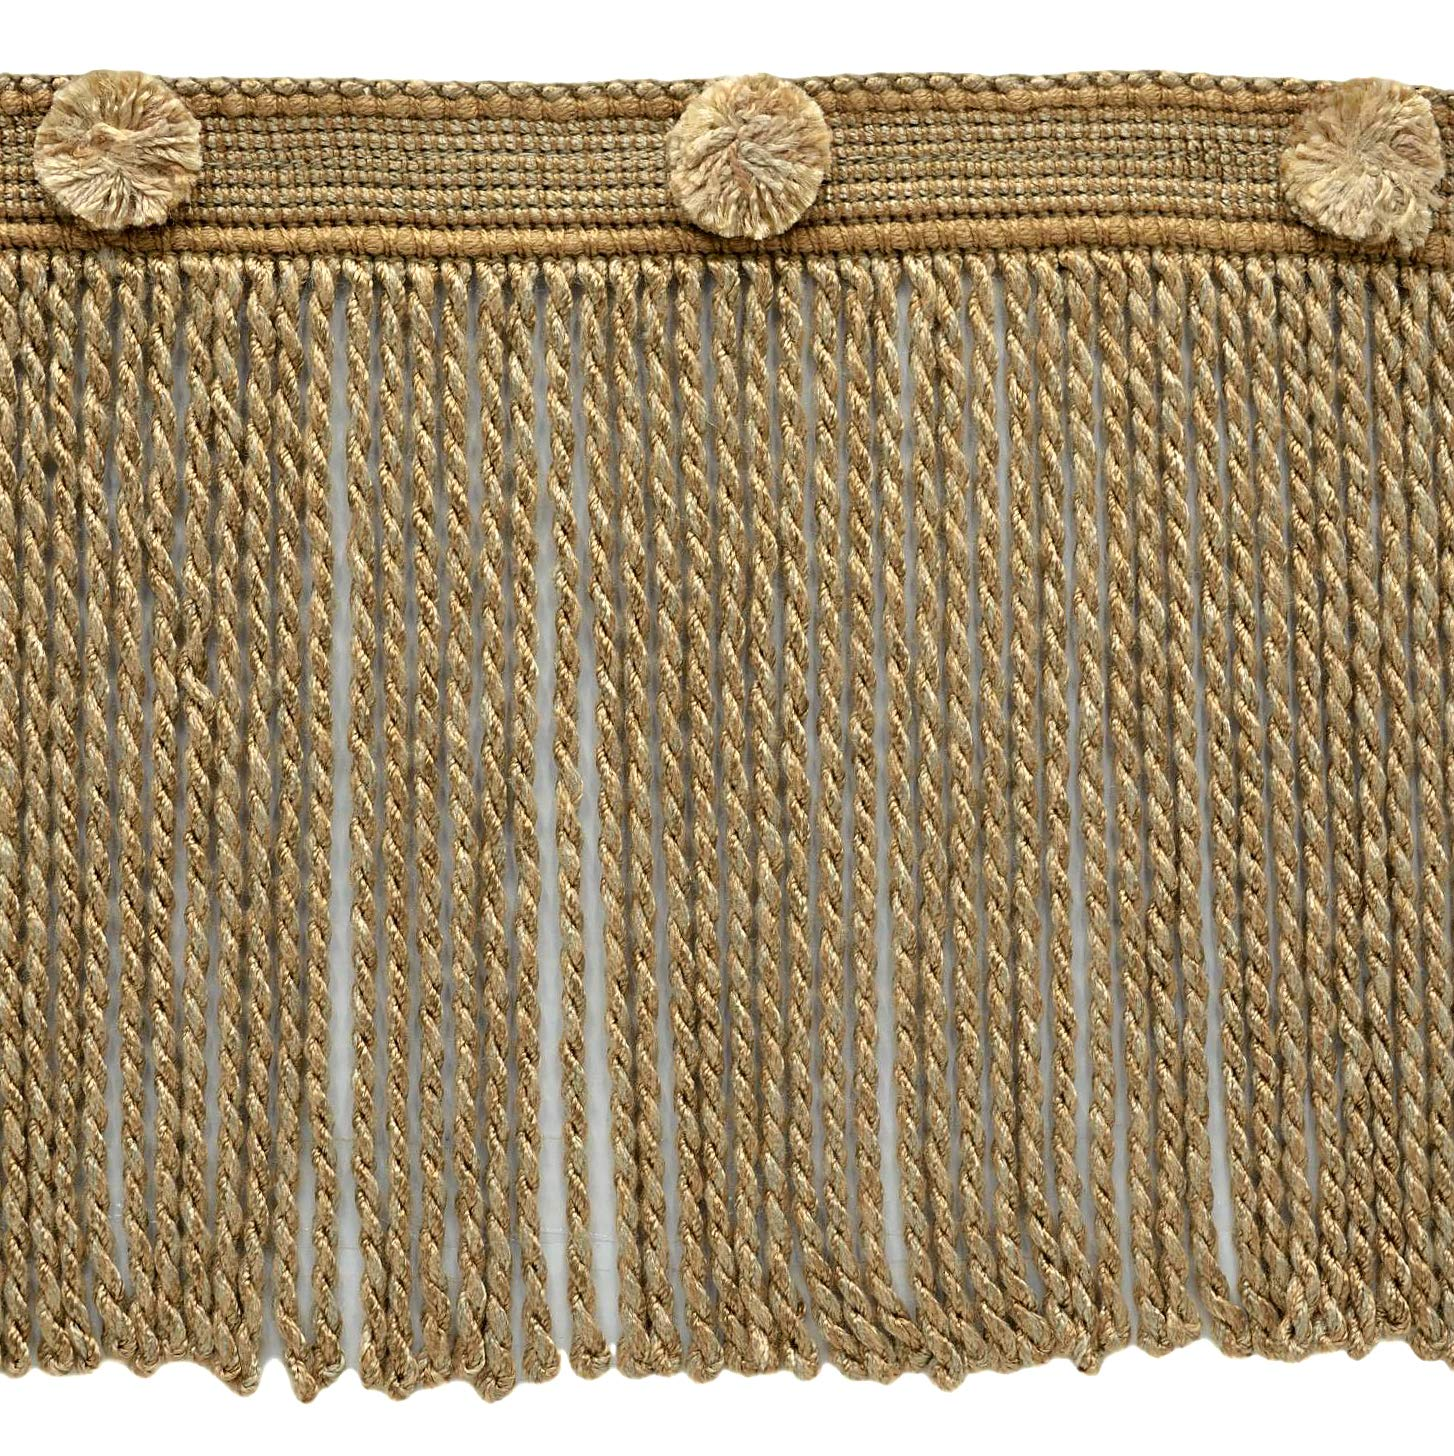 Straw Bullion Fringe Trim Style# BFHR6 Color: Blanc Navajo Sold by The Yard 81878 D/ÉCOPRO 6 Inch Long Caramel Beige